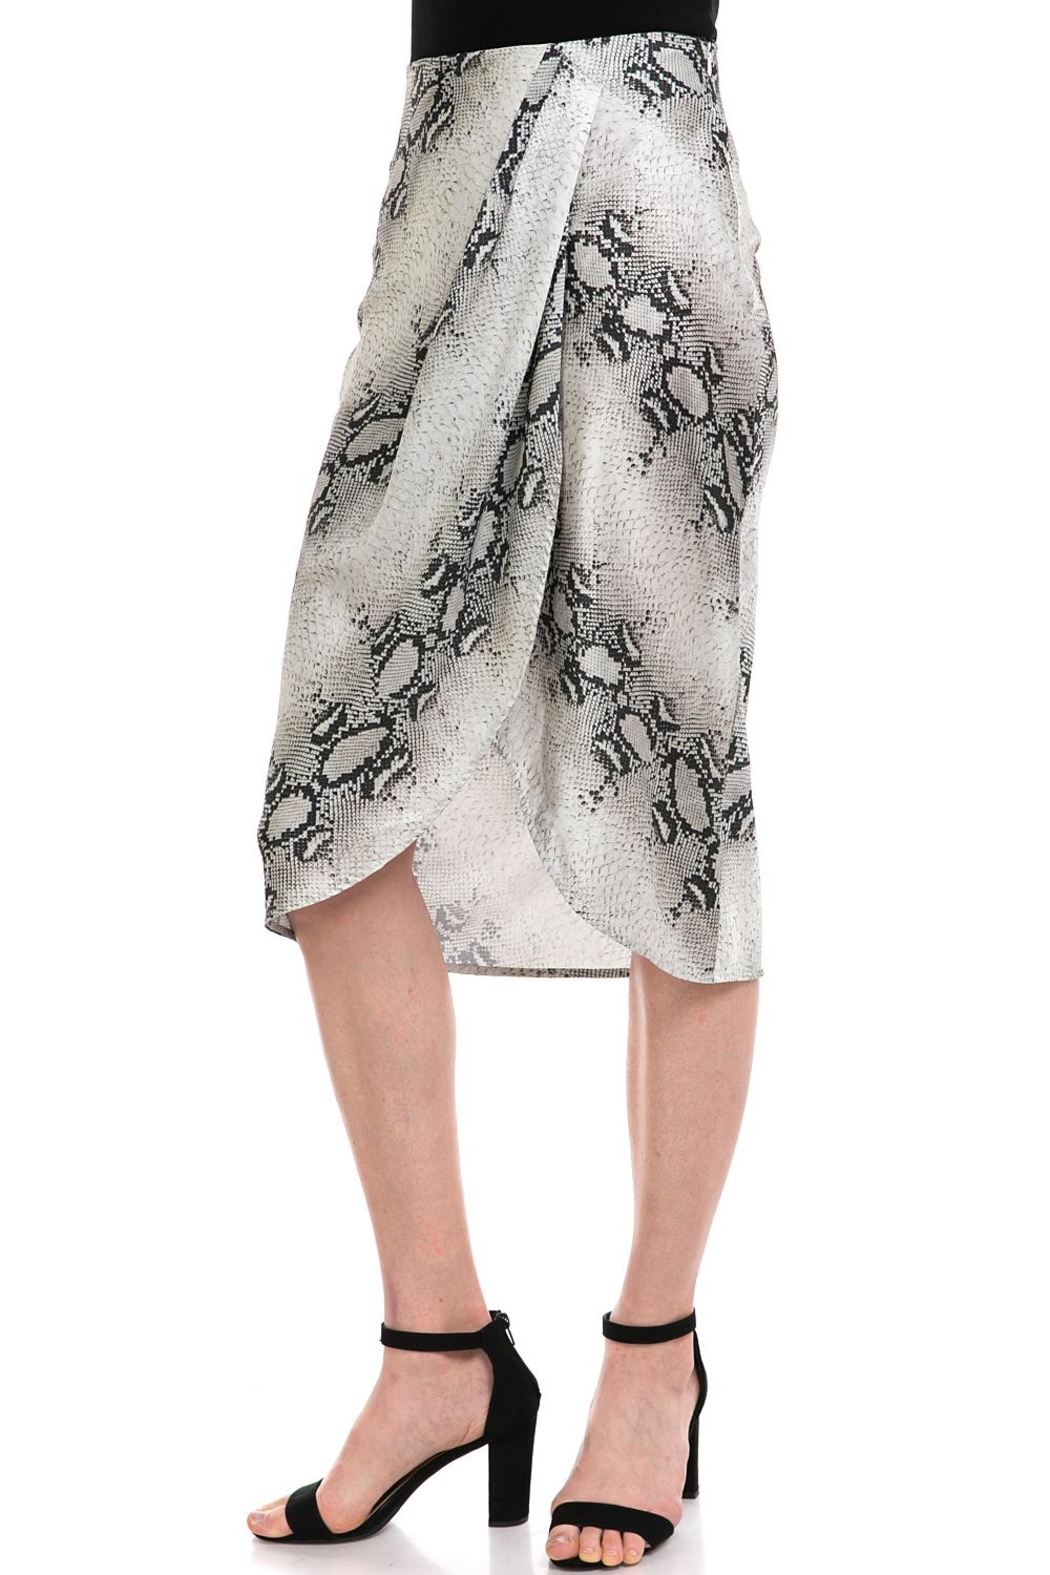 dress forum Snake-Print Overwrap Skirt - Front Full Image